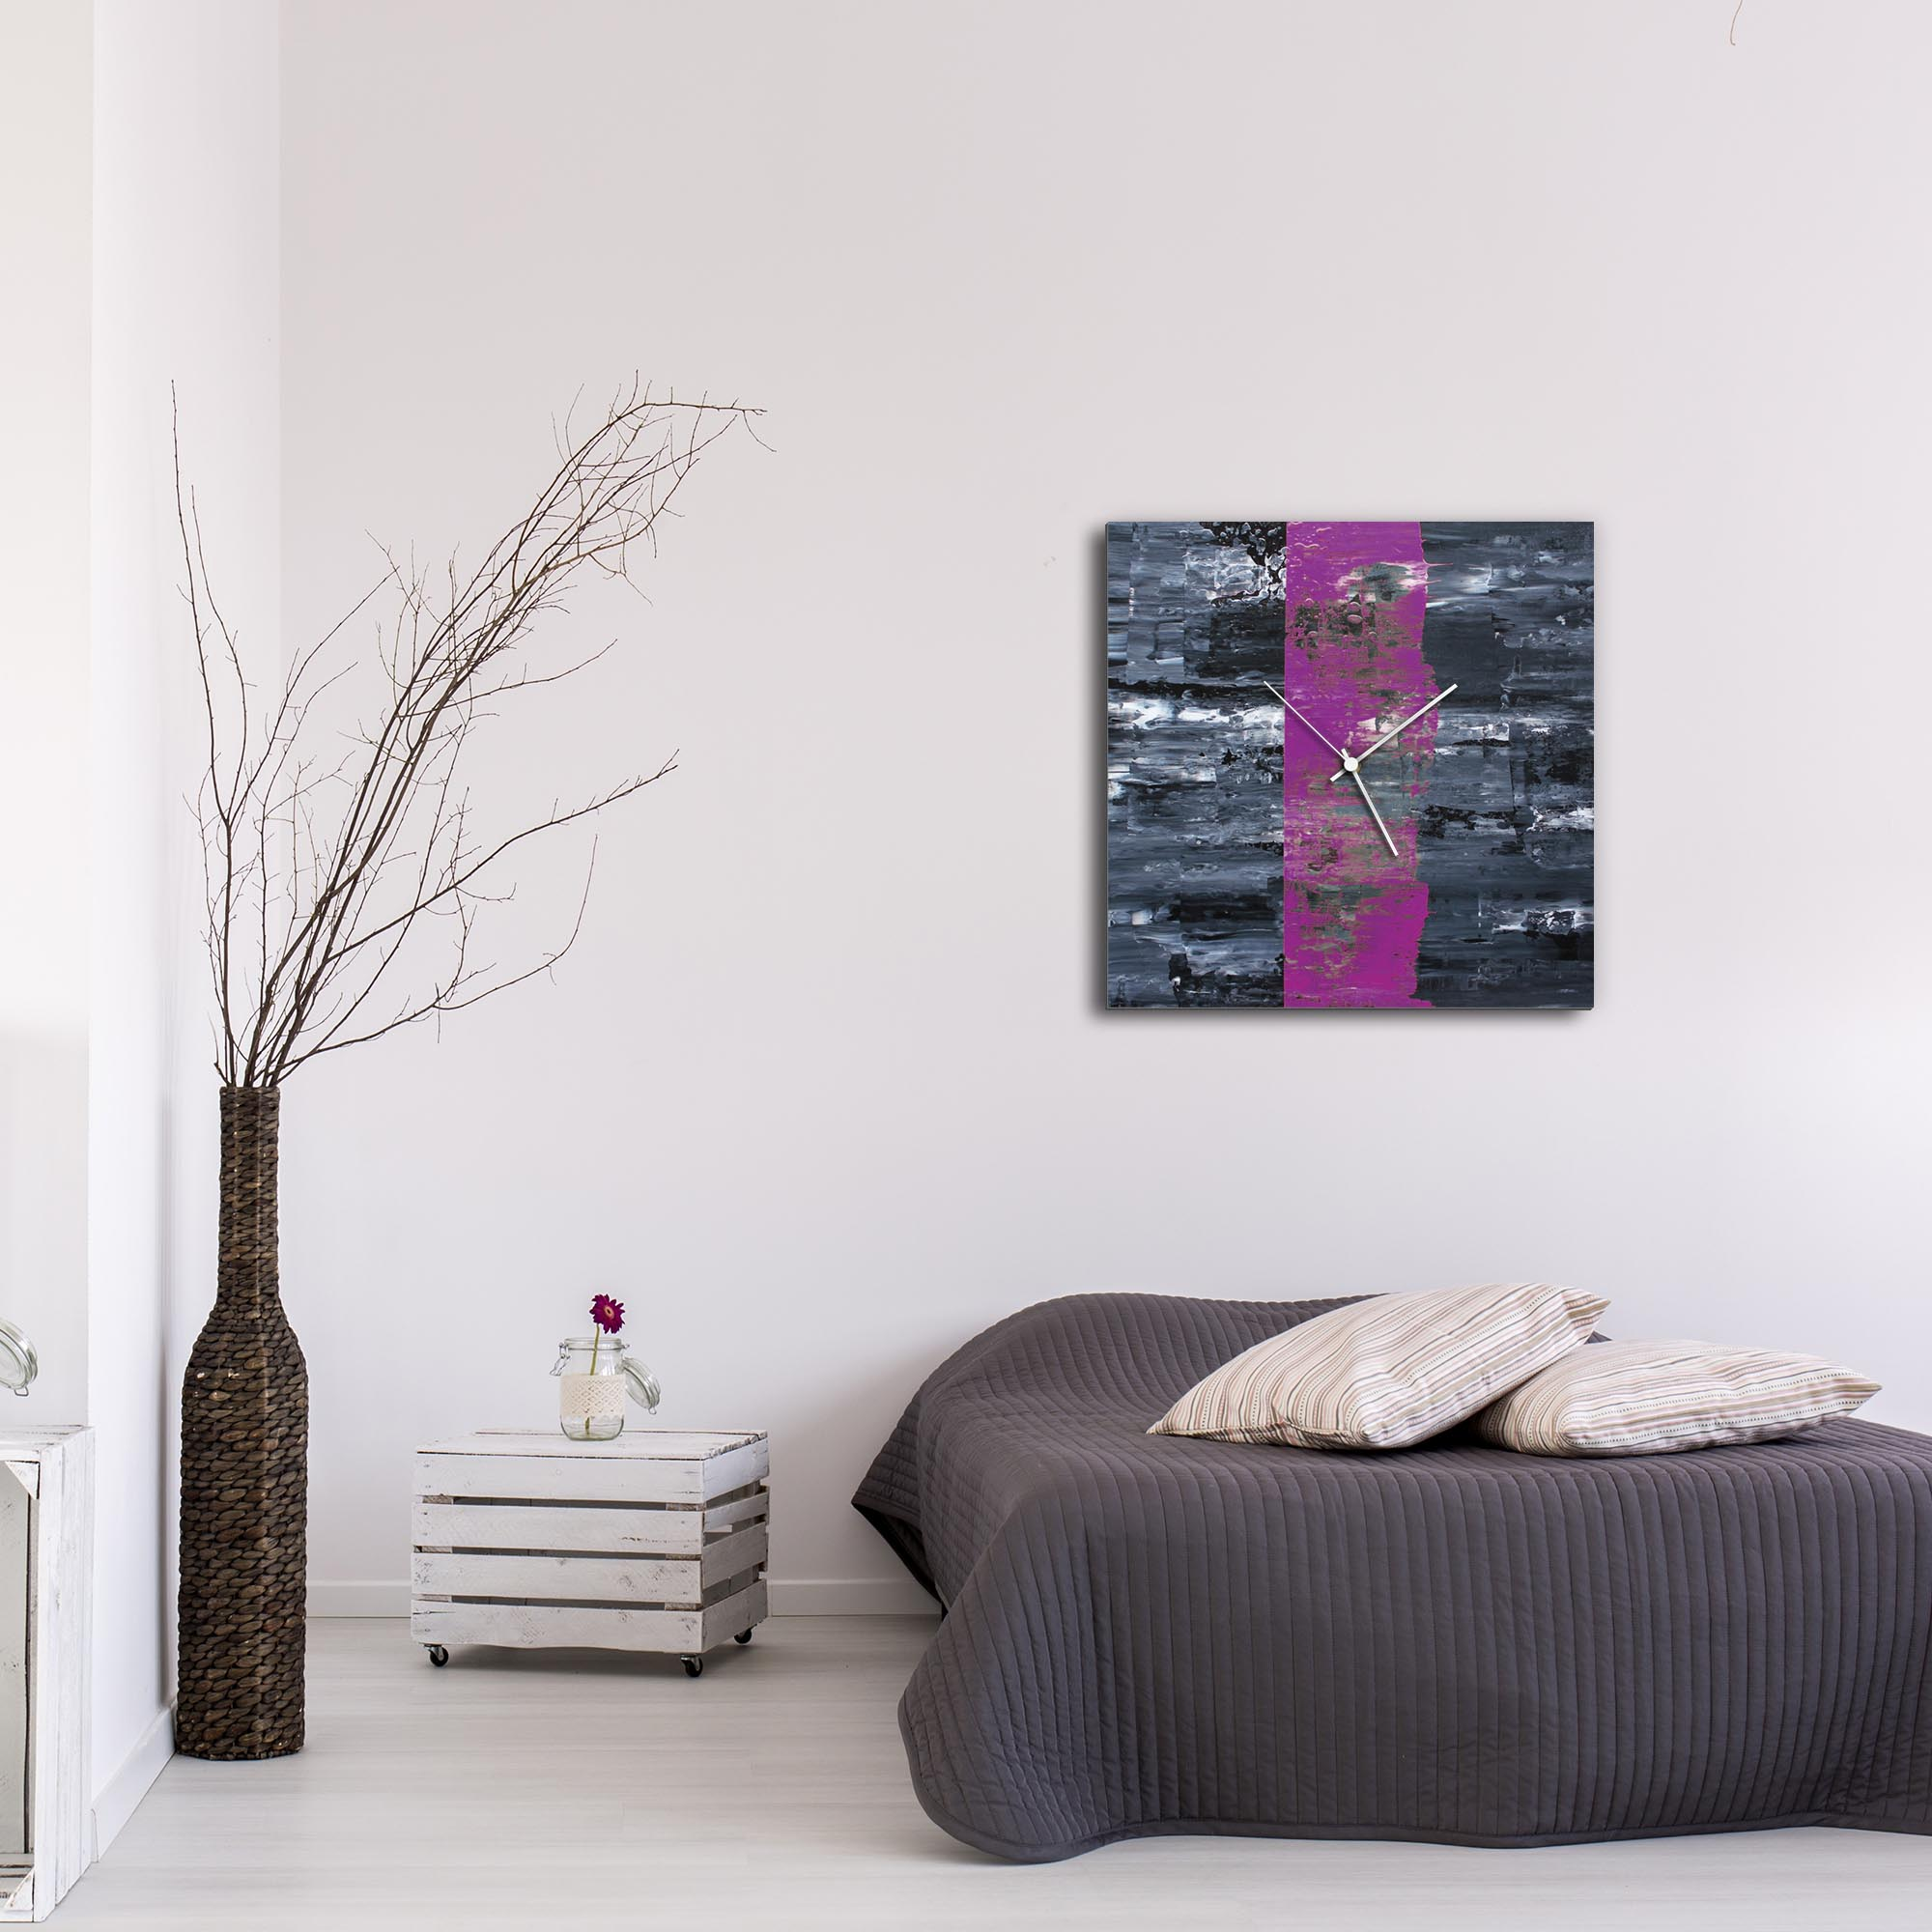 Purple Line Square Clock Large by Mendo Vasilevski - Urban Abstract Home Decor - Lifestyle View